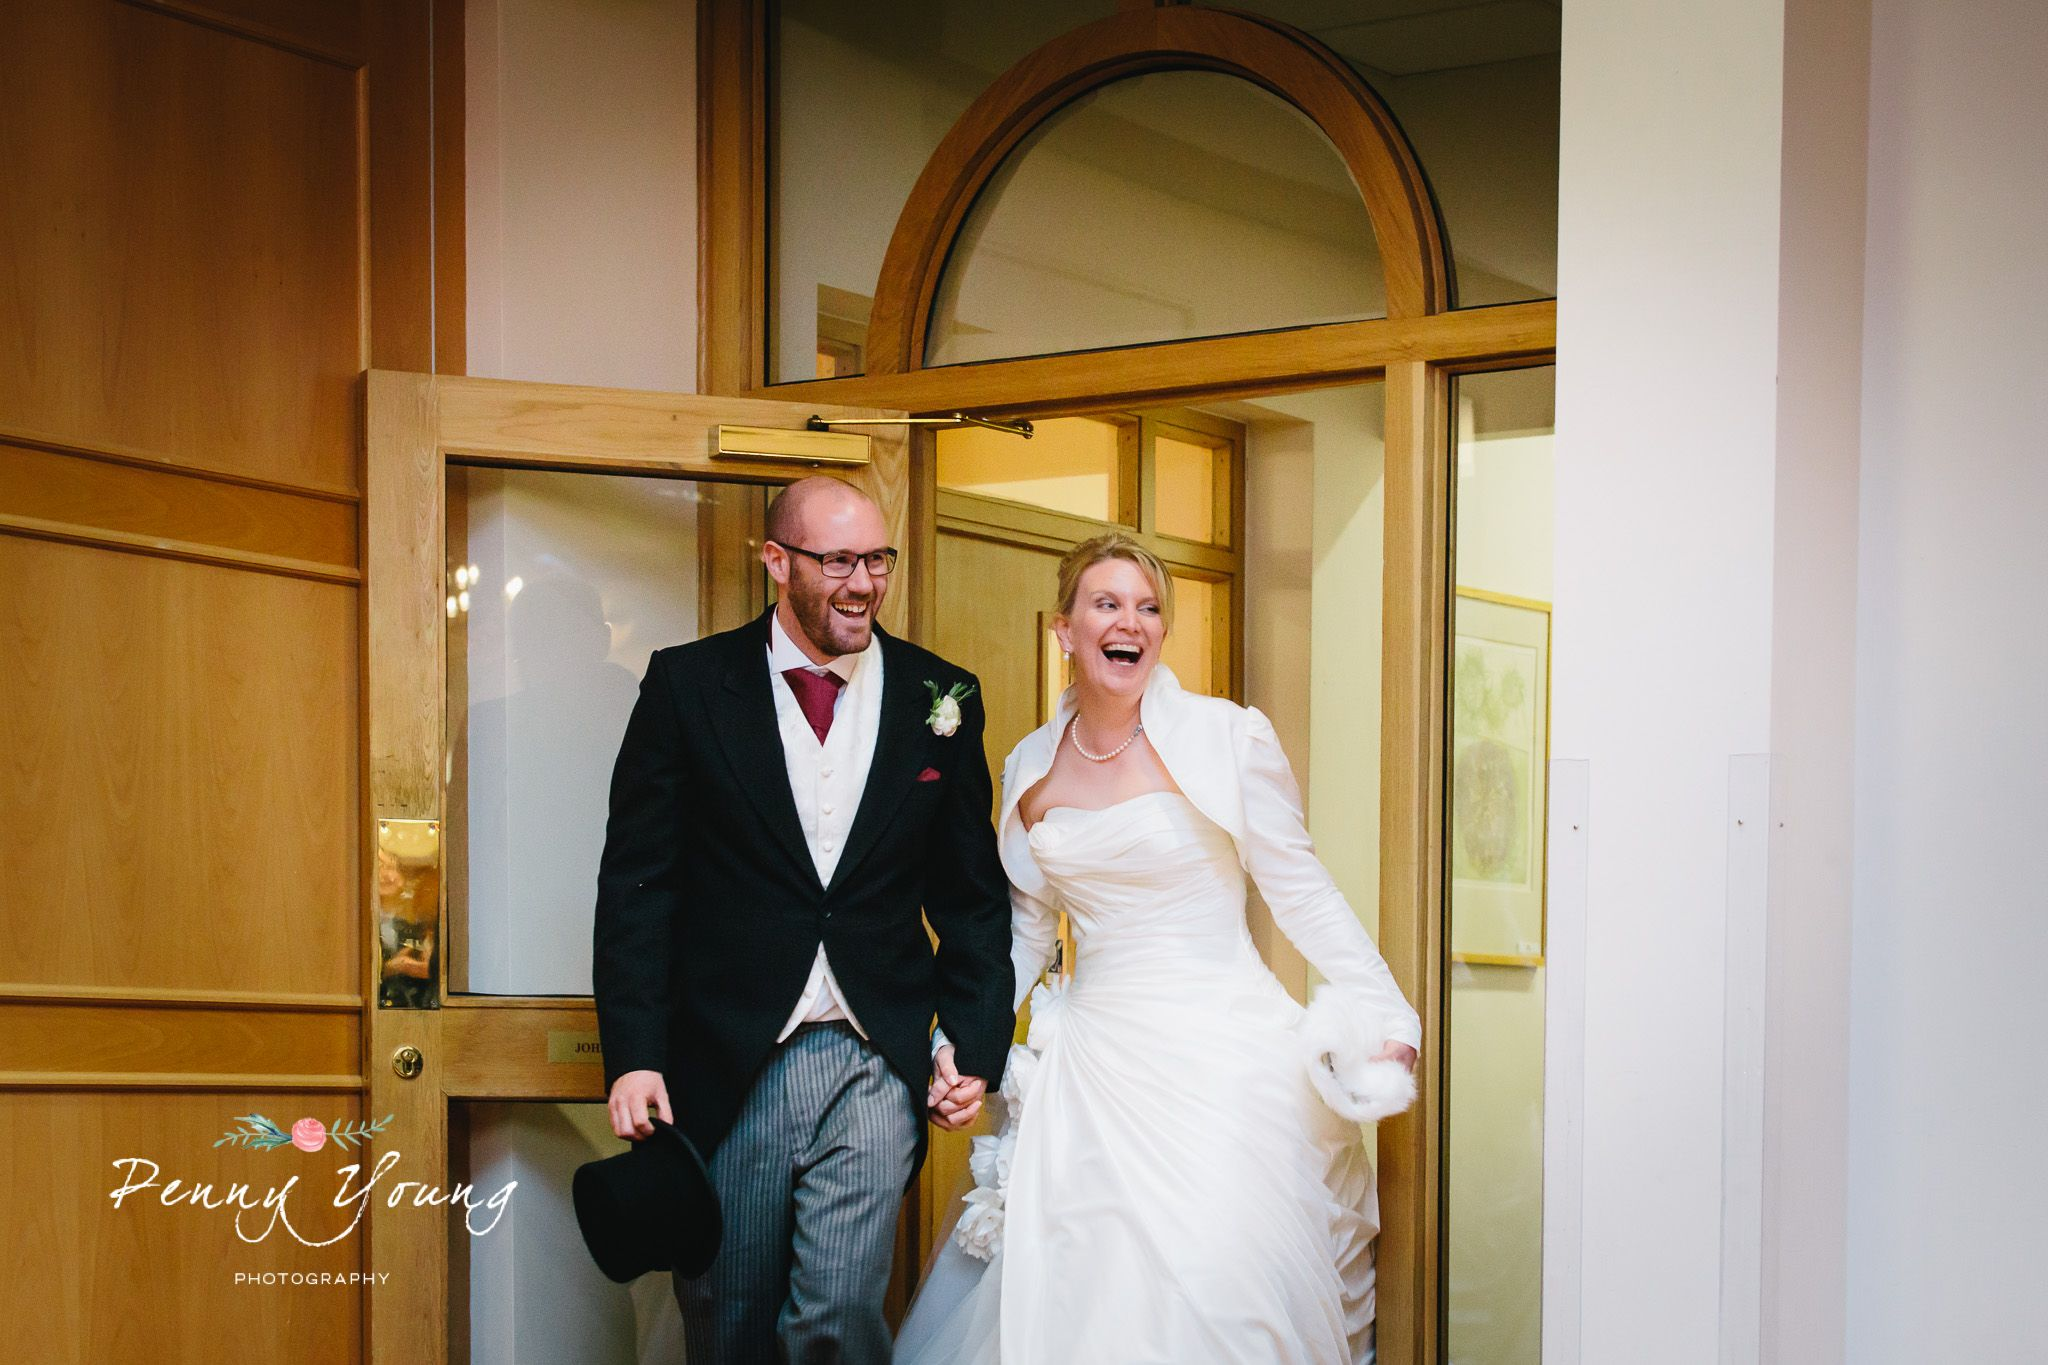 Surprise! Spring wedding reception at Oakwood House in Maidstone Kent. Church wedding. Photography by Penny Young Photography.